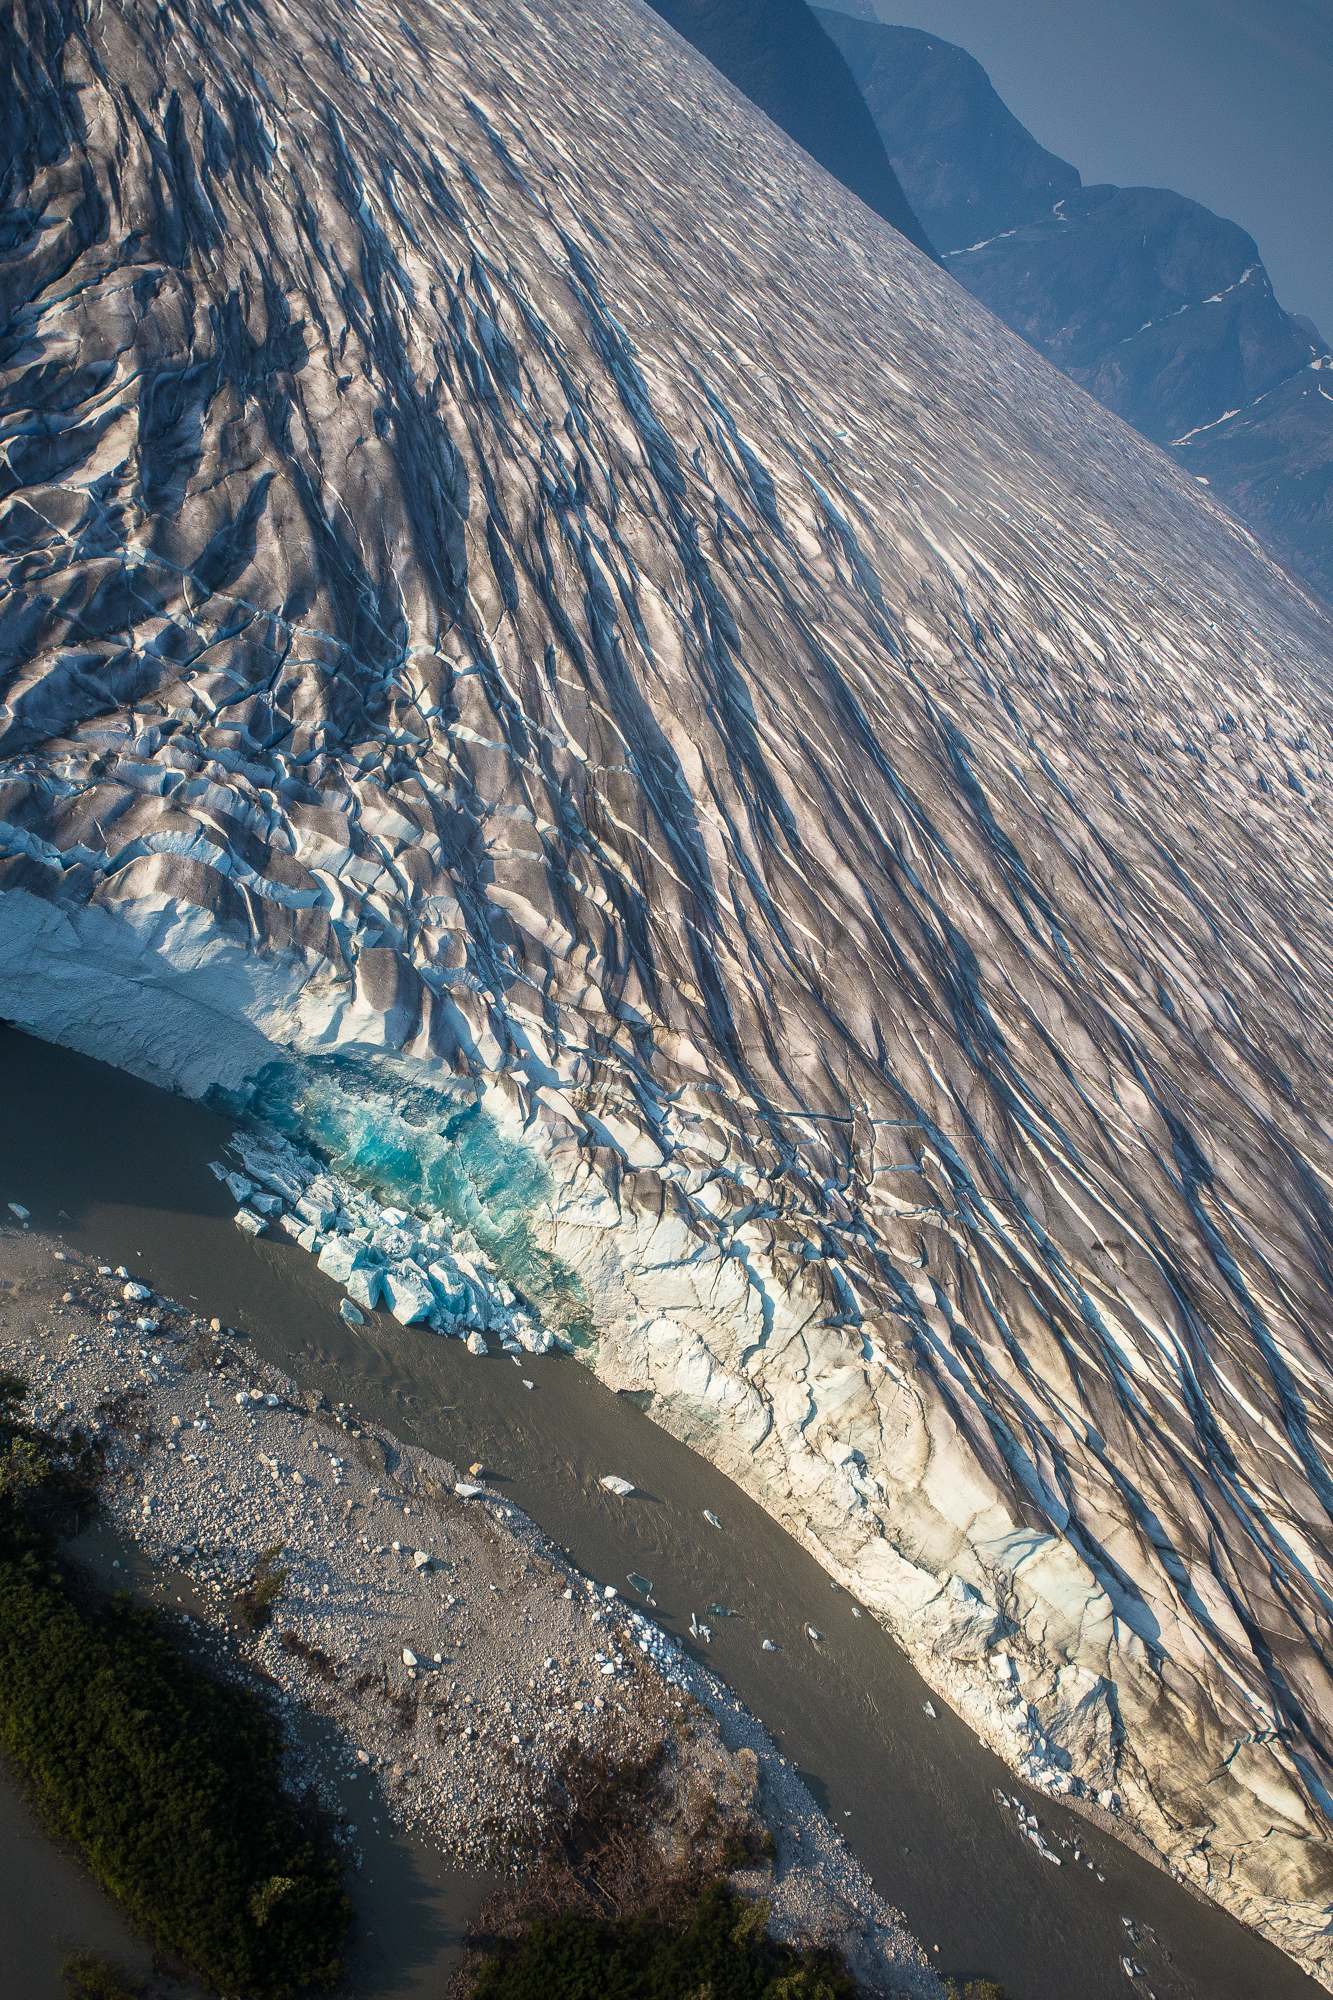 Iridescent blue ice is revealed as a small portion of the Taku Glacier, near the glacier's snout, calves into the grey meltwater below (photo: Chad Shmukler).